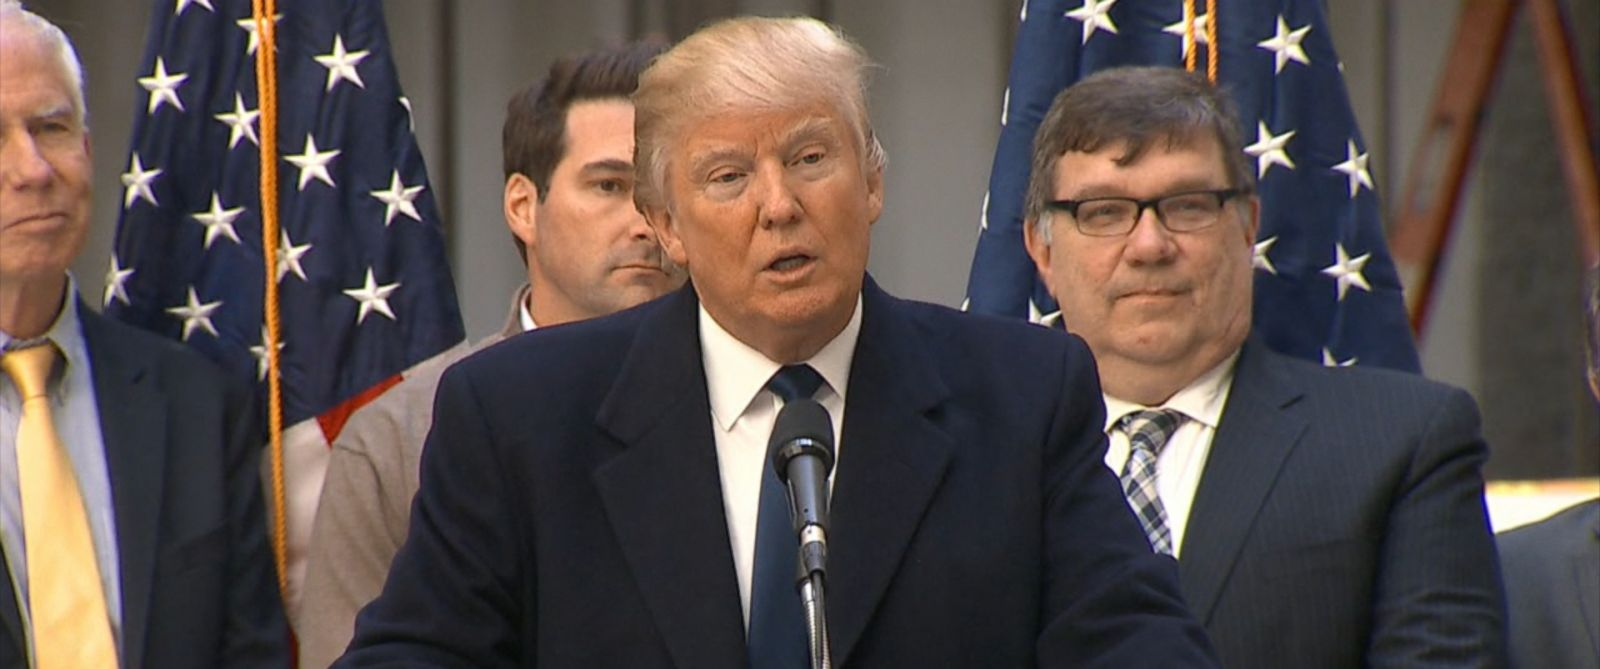 PHOTO: Donald Trump is seen here speaking at an event in Washington, March 21, 2016.